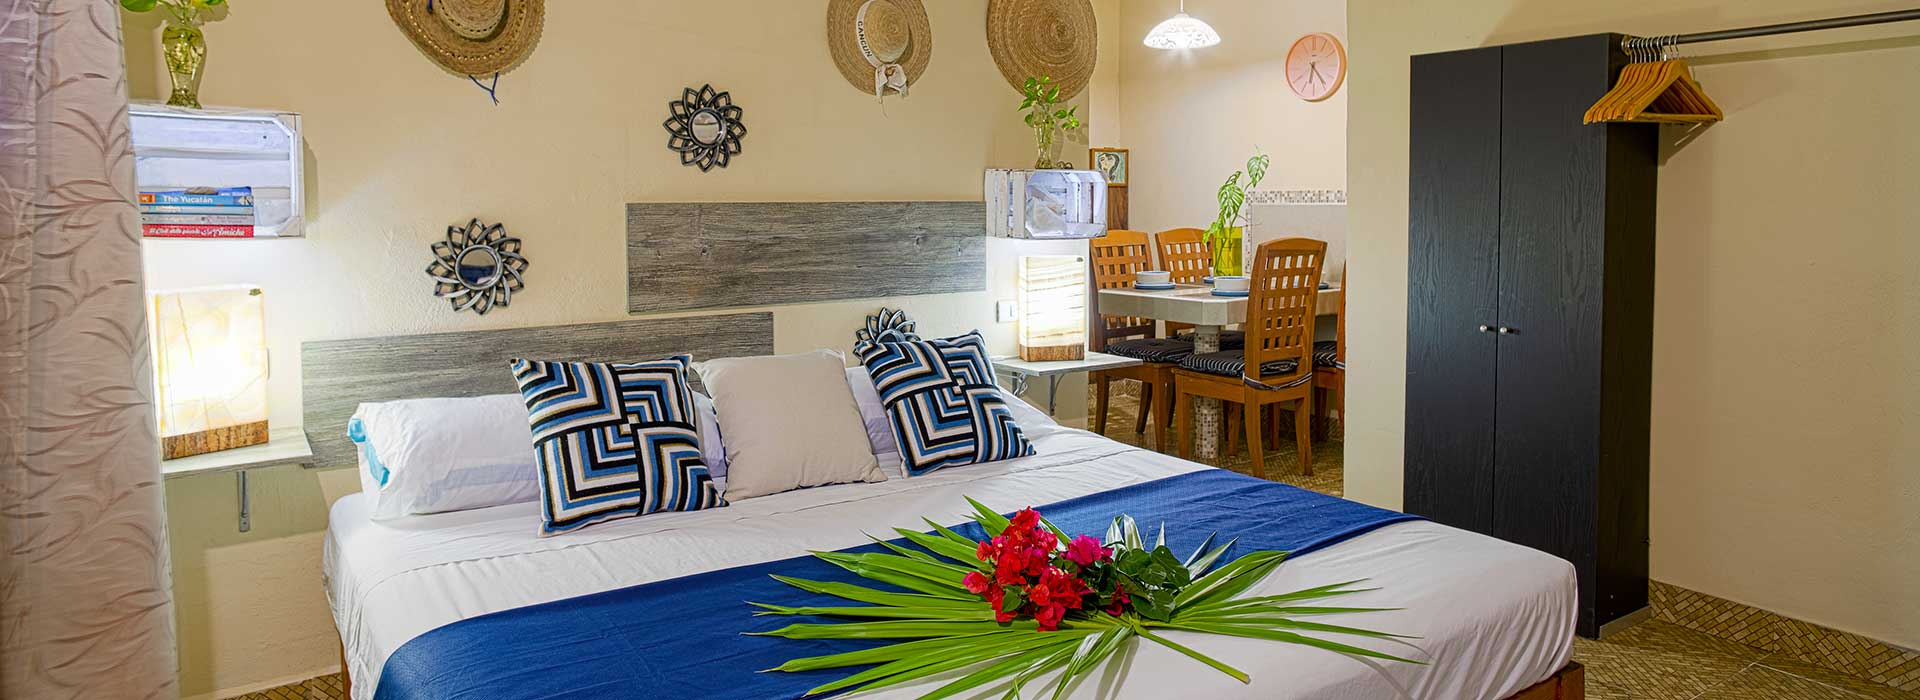 Angy Suite Cottage 1 Bdr. sleeps 3